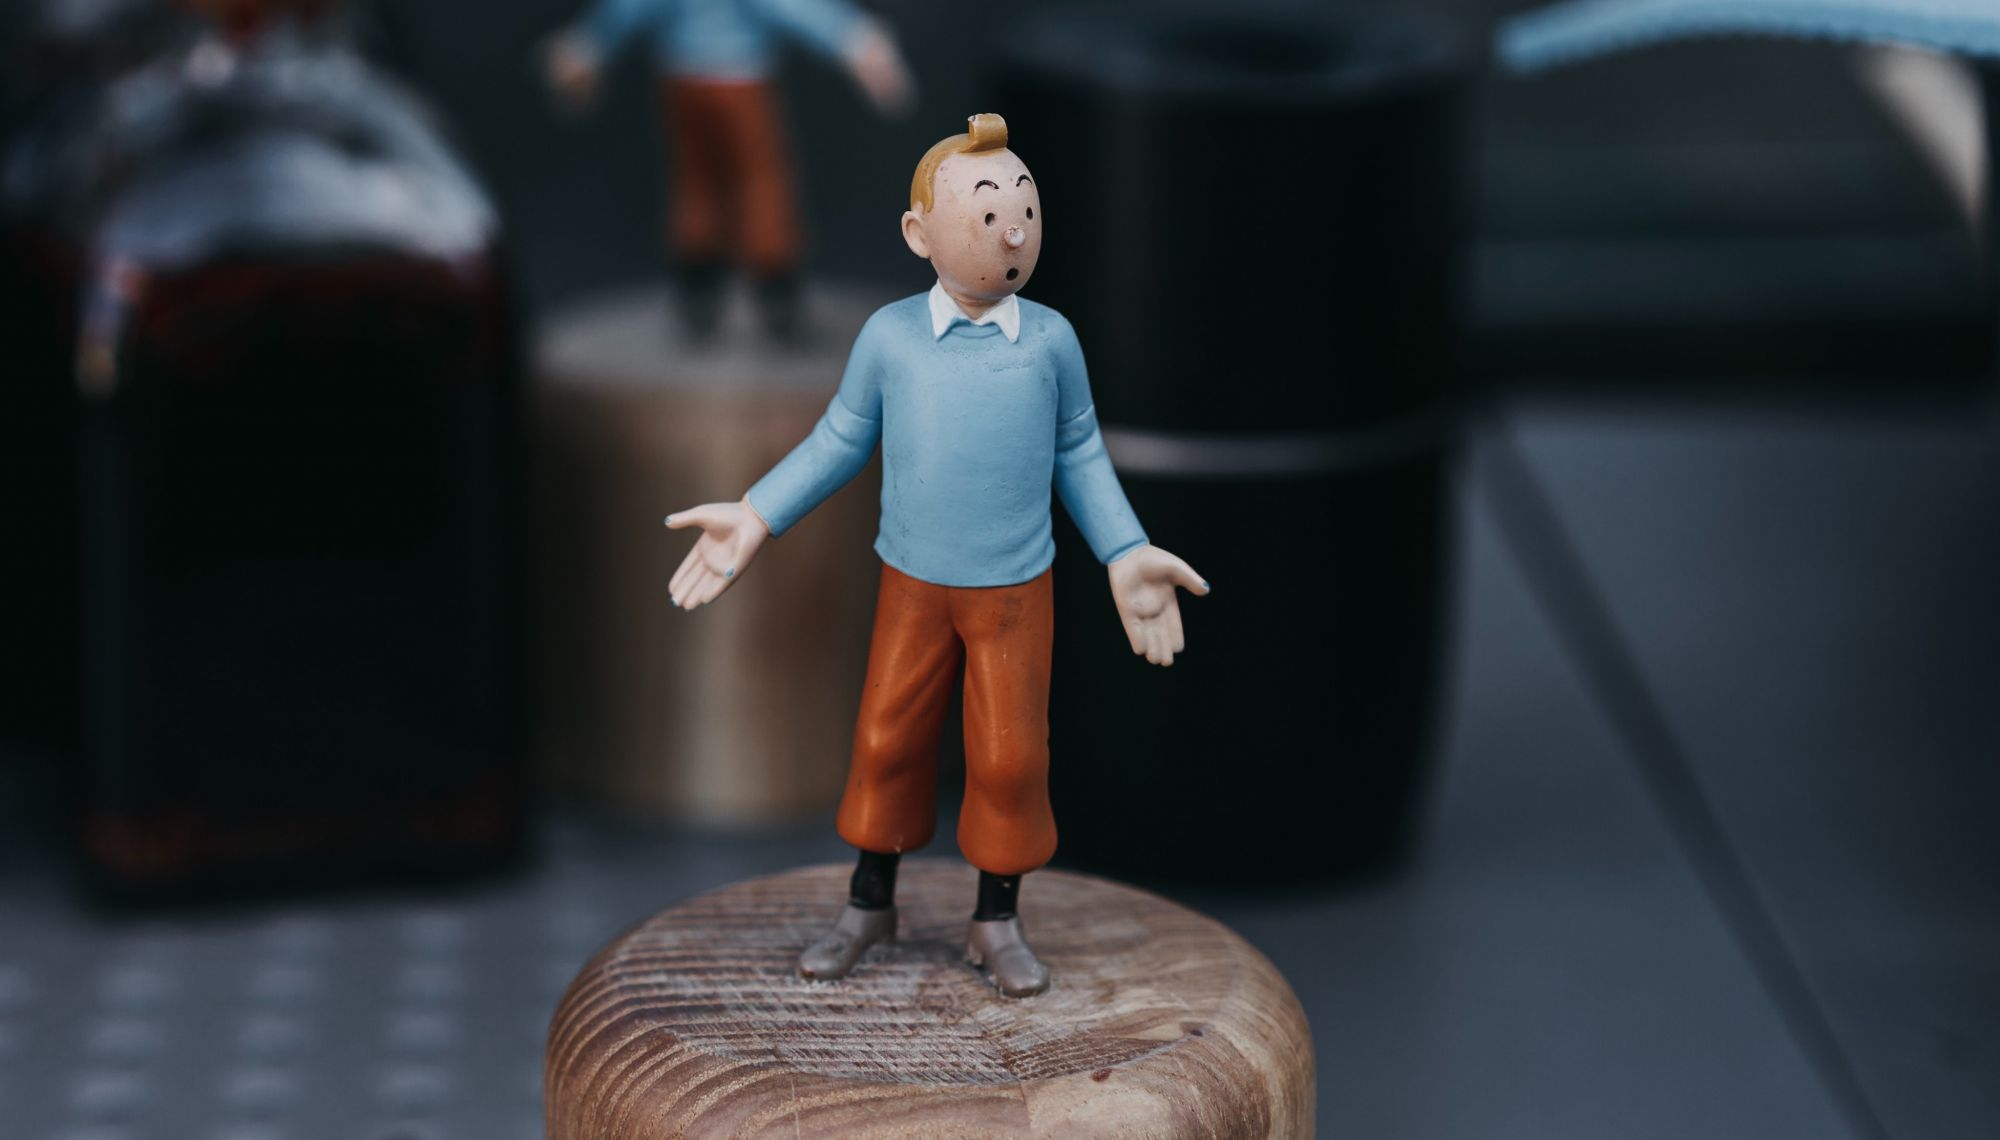 An Original Tintin Painting Sold For A Record Of 3 Million Euros At Auction